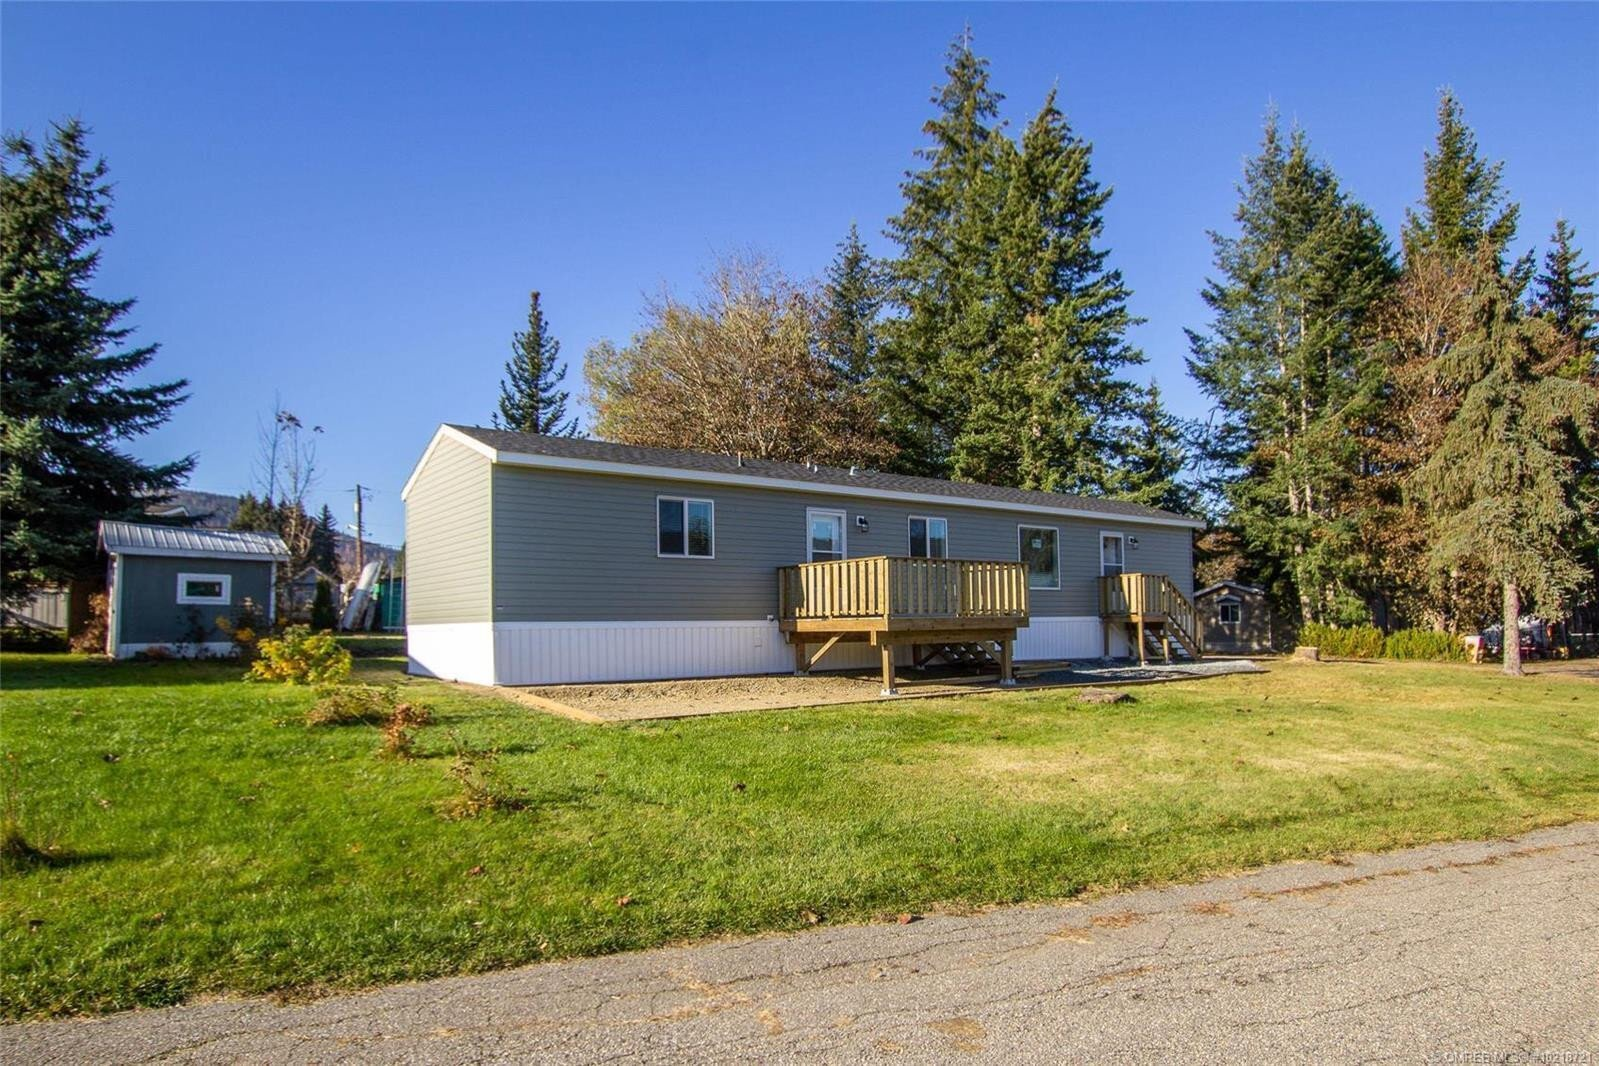 Home for sale at 2500 97b Hy Unit 56 Salmon Arm British Columbia - MLS: 10218721